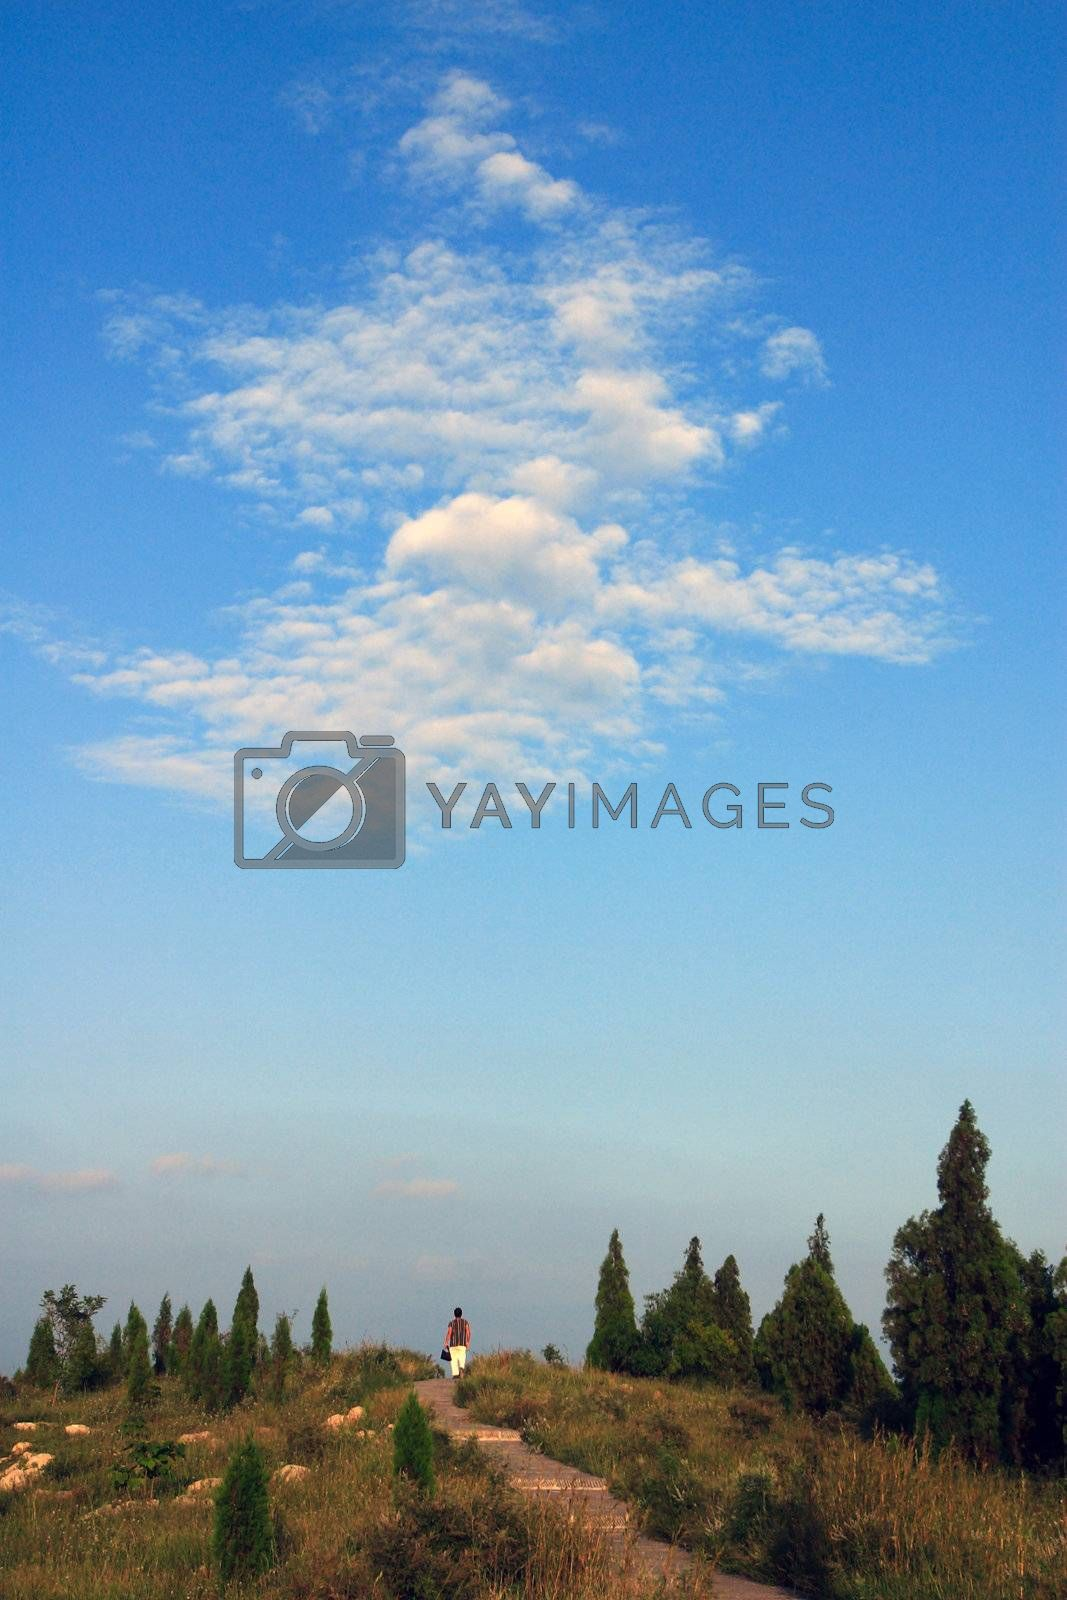 Royalty free image of  Scenery, mountain, sky, exercise, walk, nature,   by xps